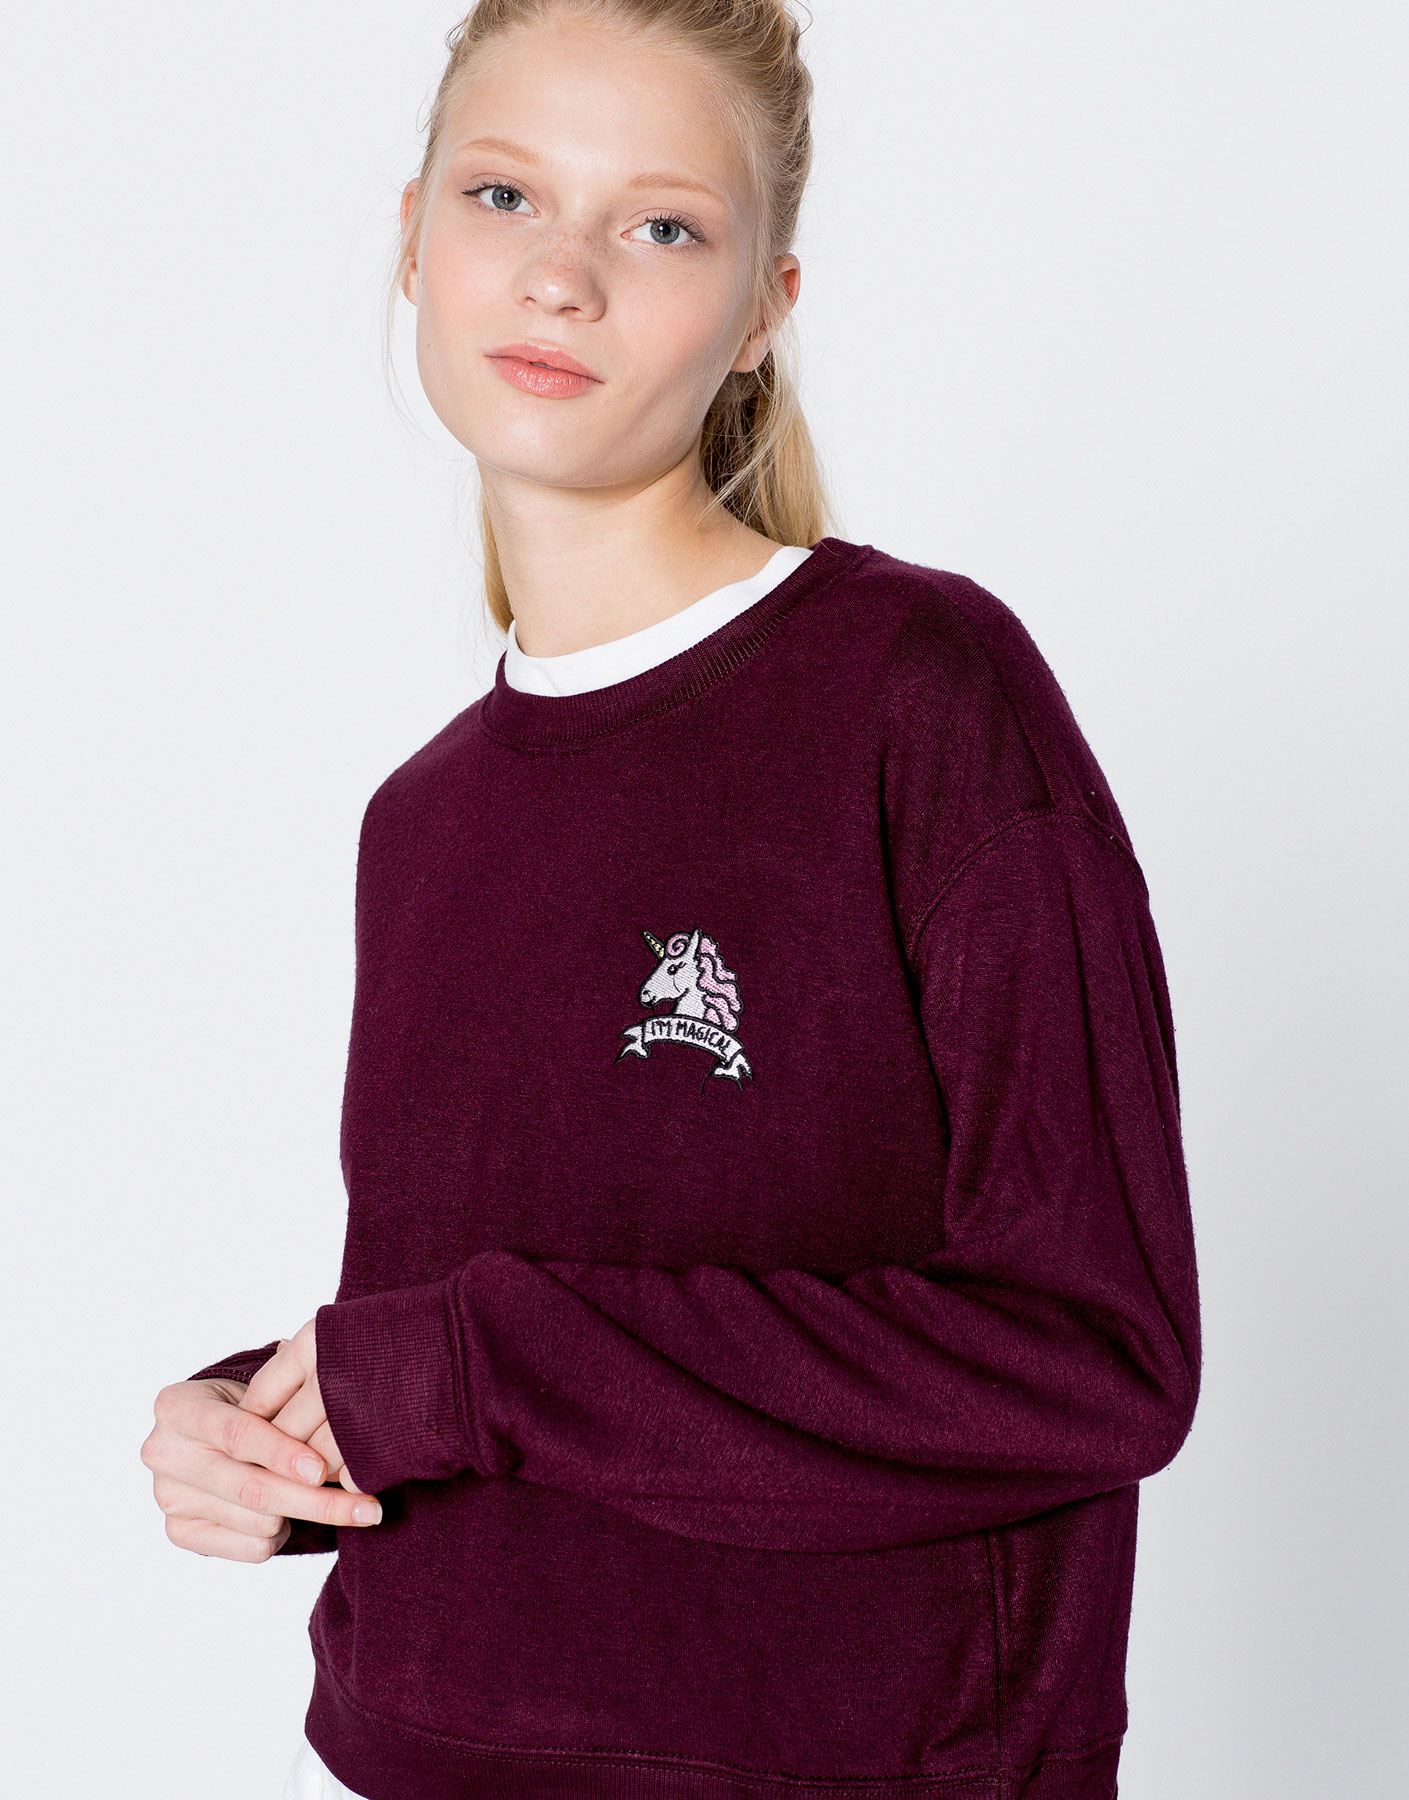 Unicorn patch sweatshirt